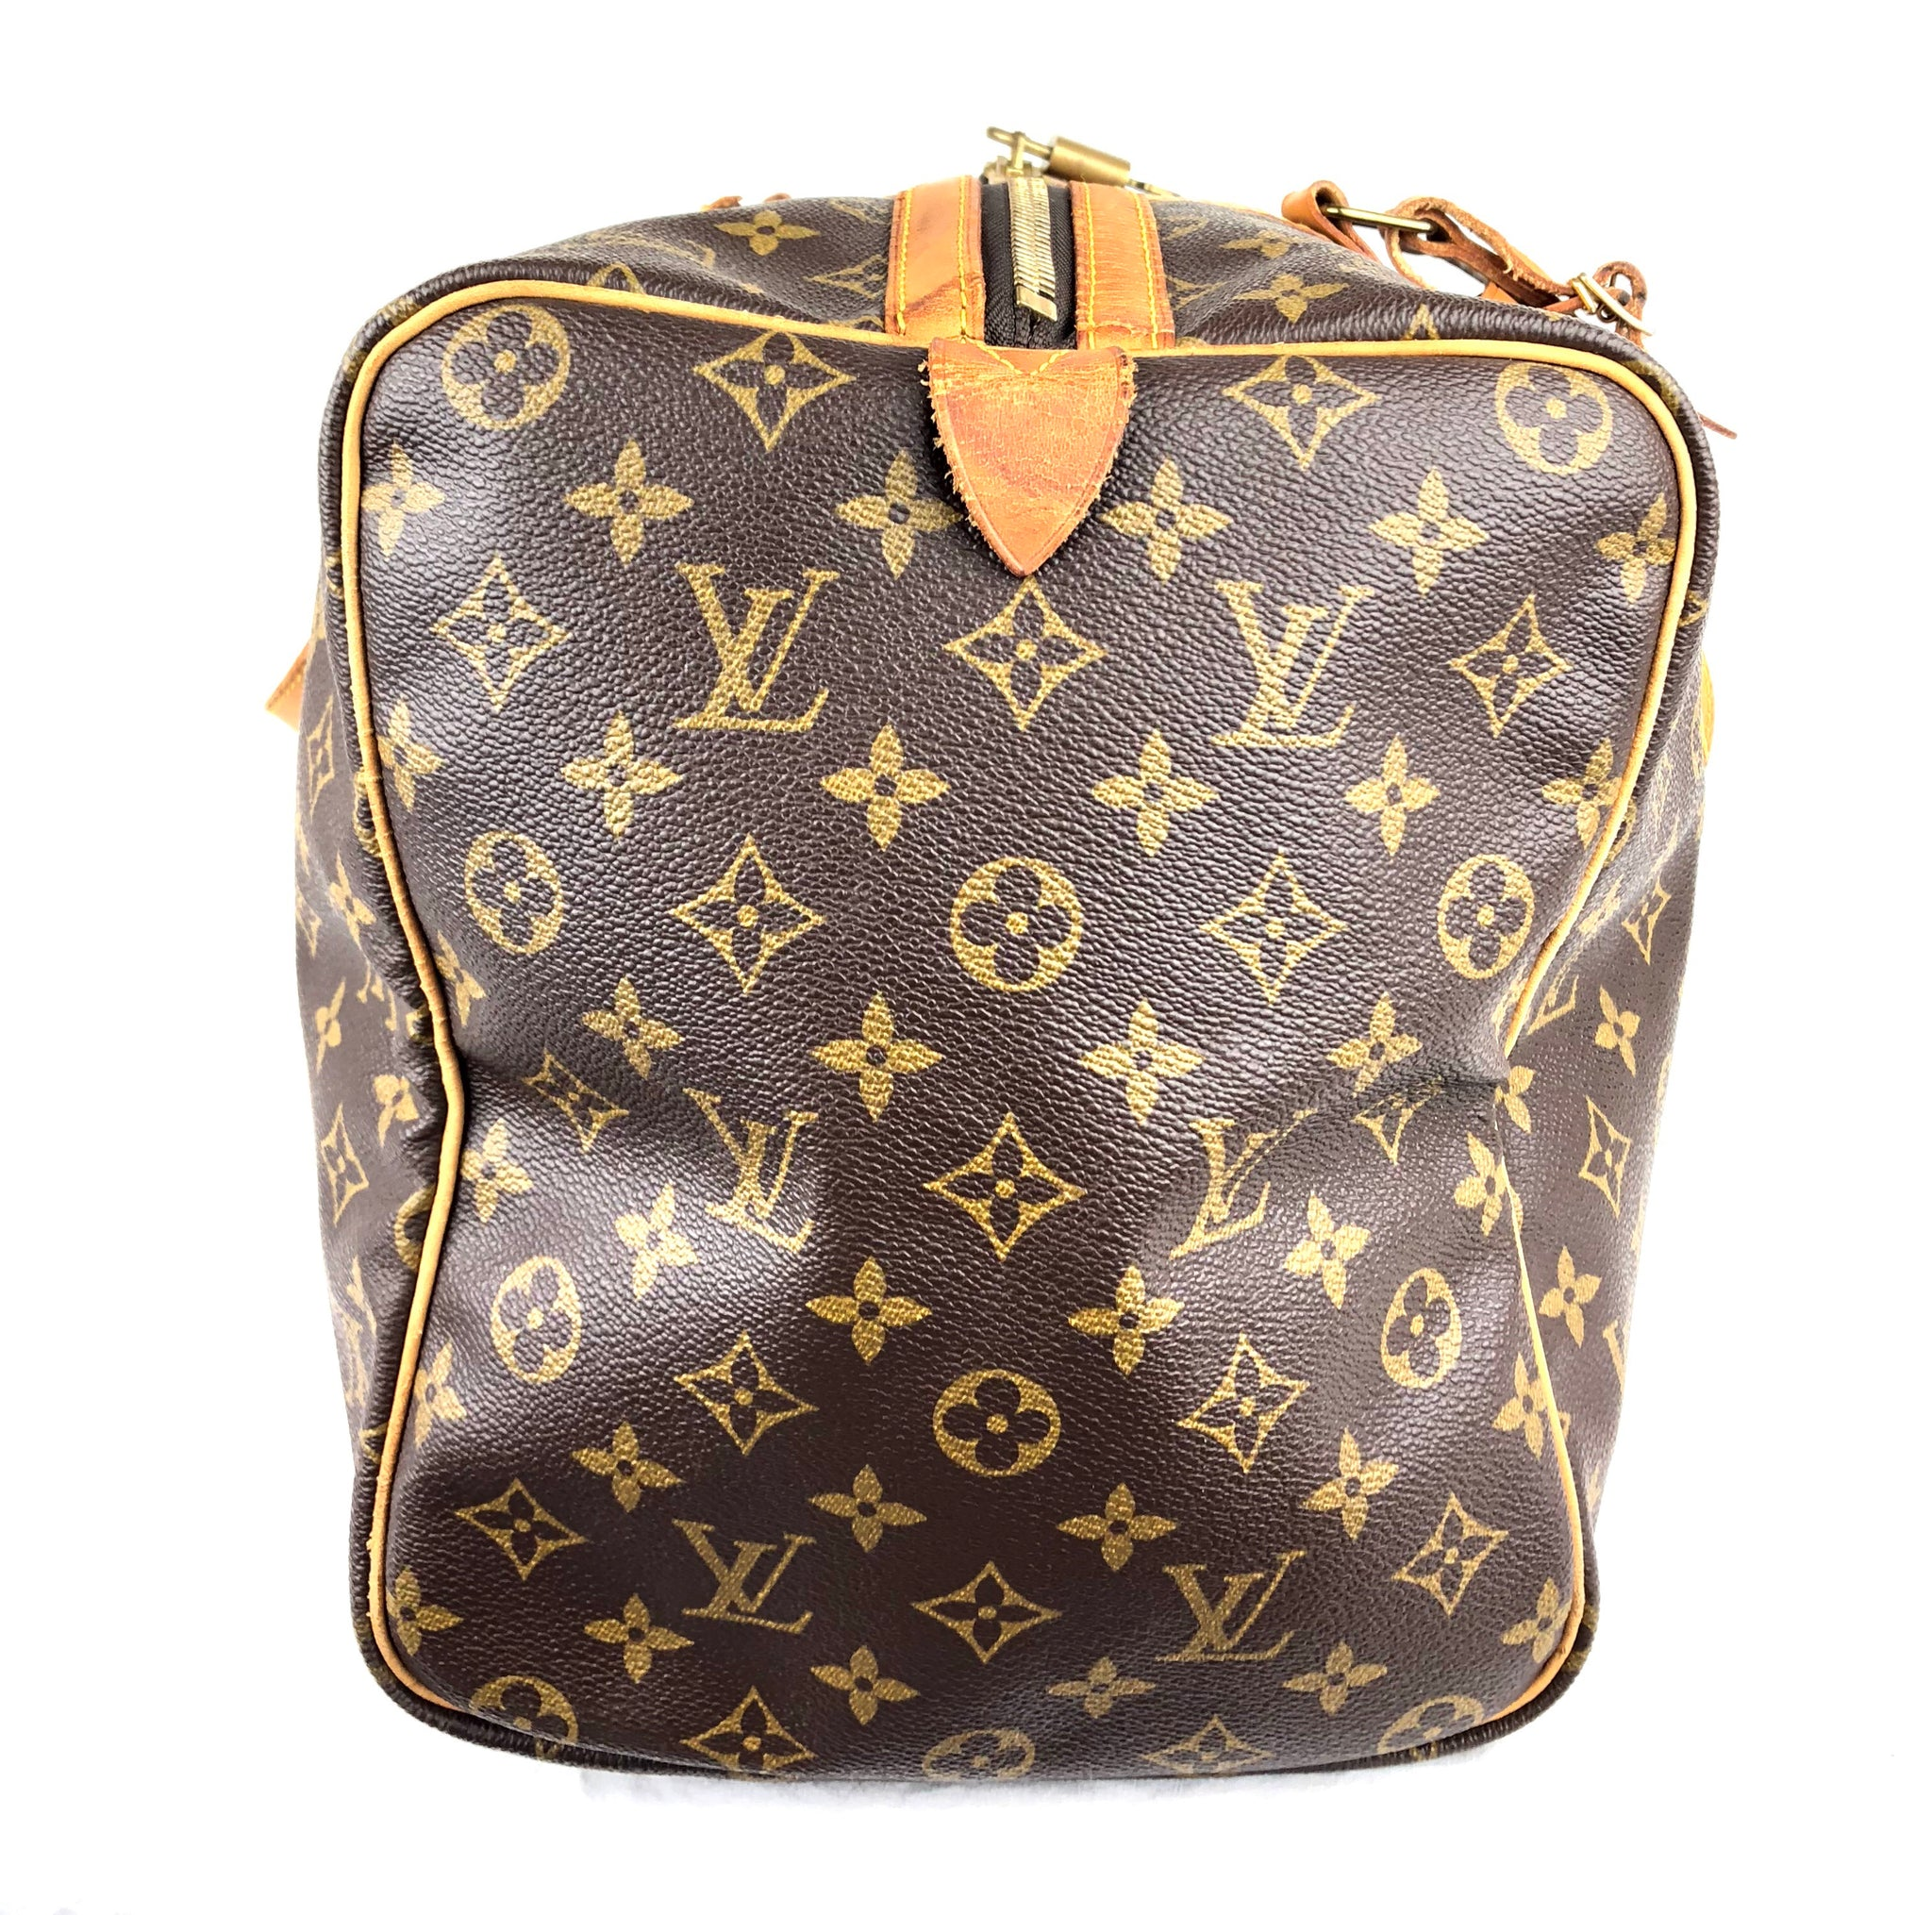 LOUIS VUITTON Monogram SAC SOUPLE 45 Duffel Bag